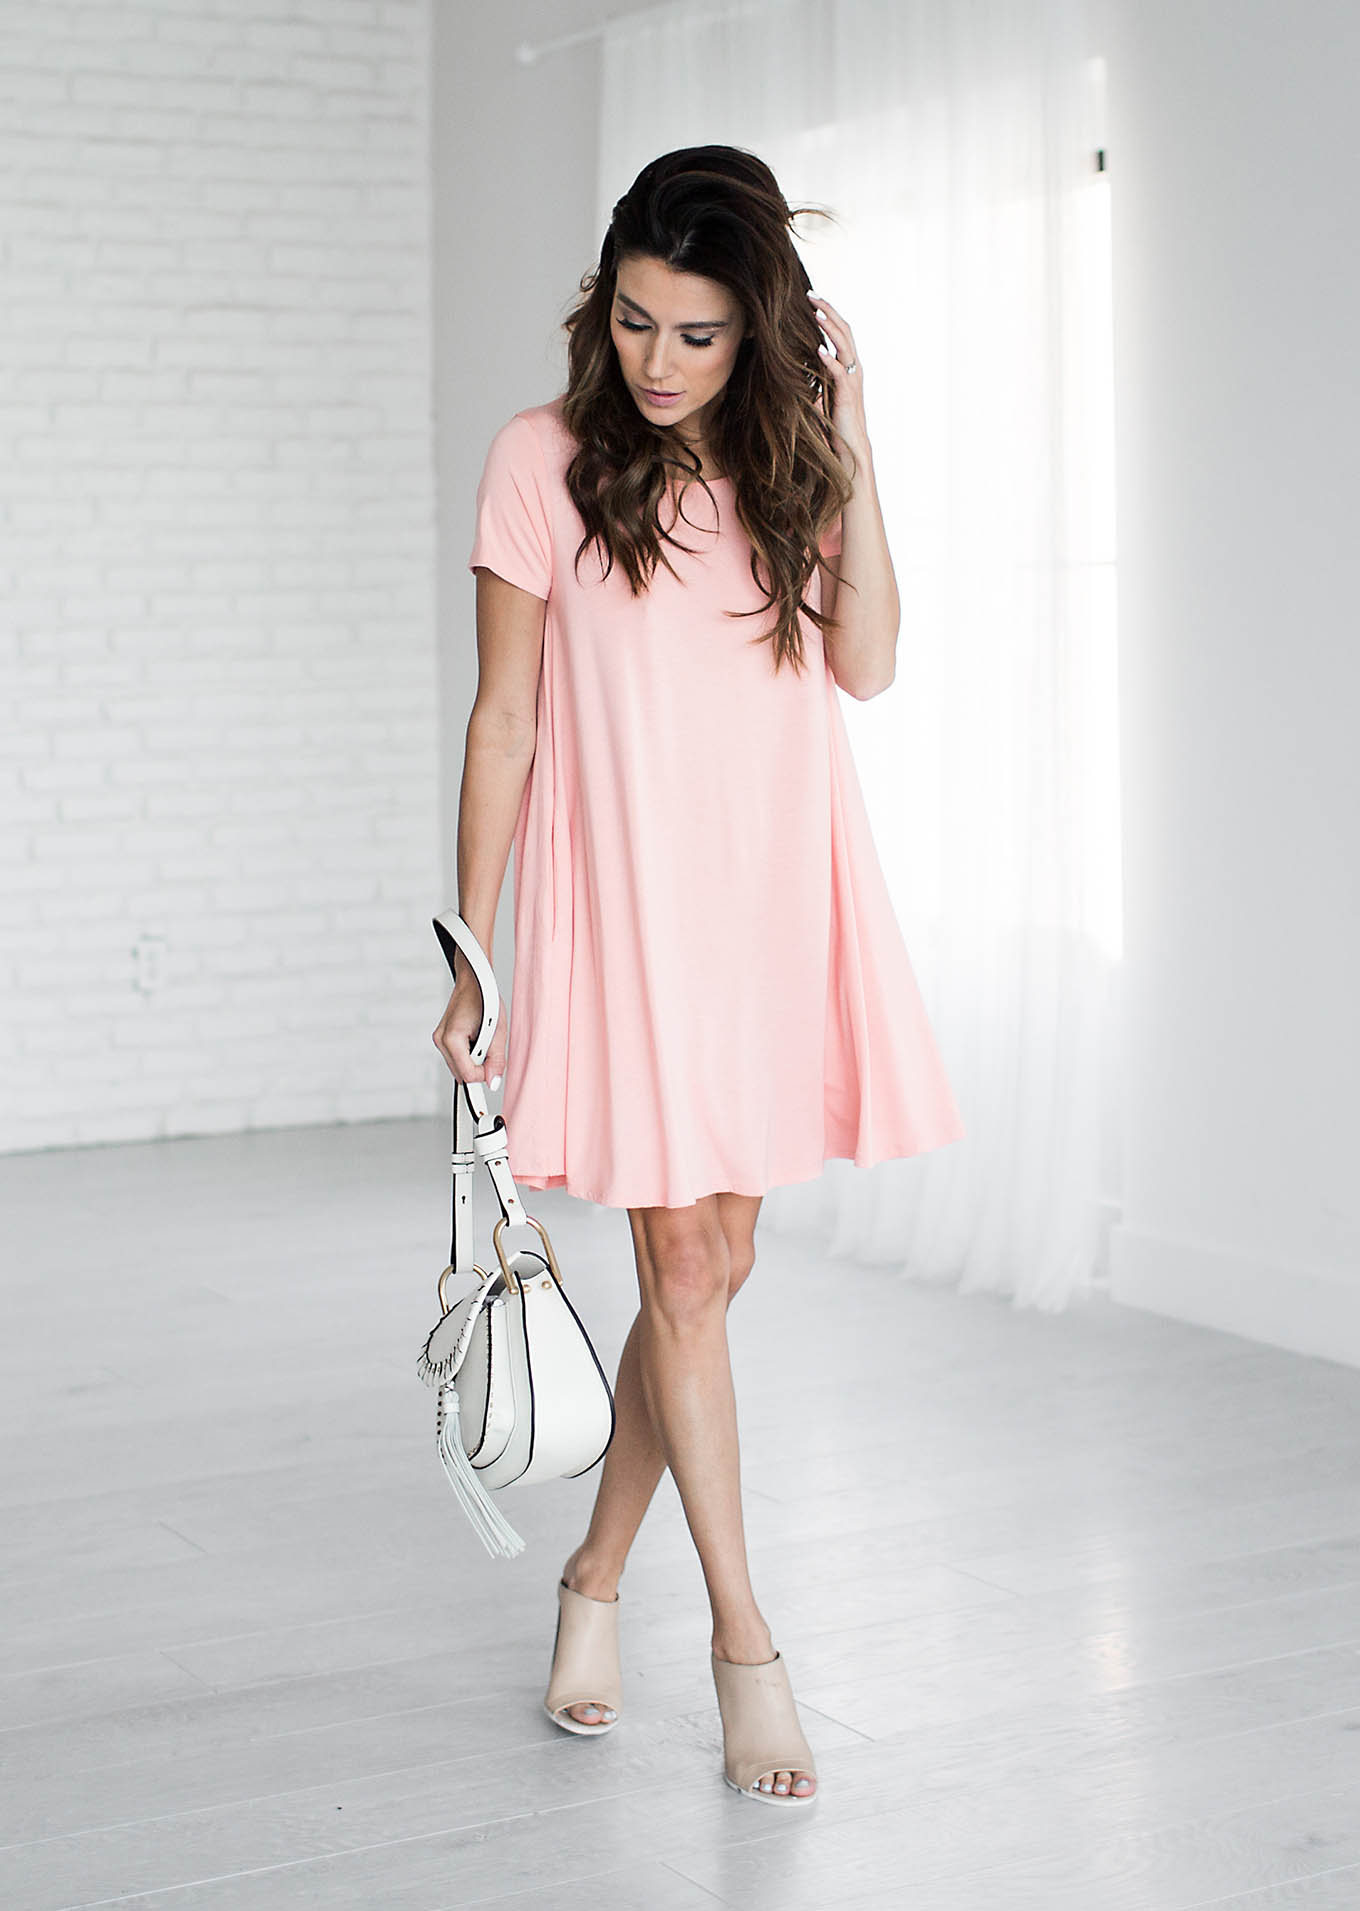 Christine Andrew is keeping it stylishly minimalist here, wearing a simply styled pink t-shirt dress with nude sandals and a white handbag. This look is ideal as it is both affordable and completely achievable! Dress: ILY Couture.